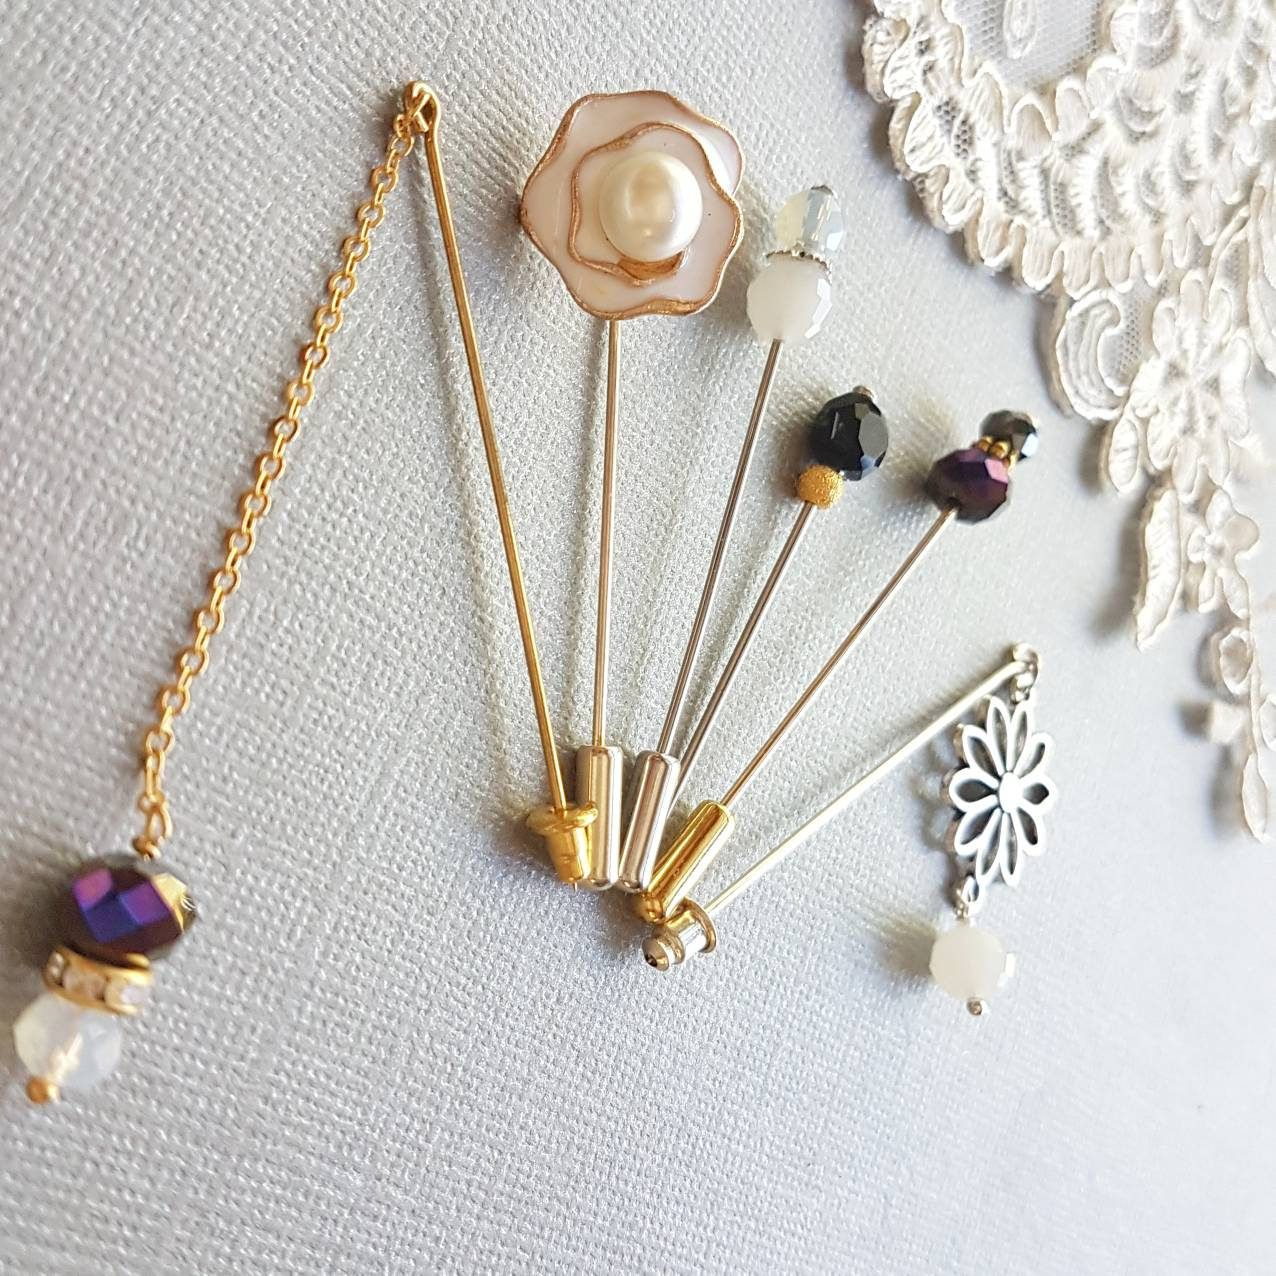 Fall In Love With These Beautiful Hand Crafted Black U0026 White Hijab Pin Sets.  A Gorgeous Collection Of 6 Handmade Hijab Pins In Black And White.